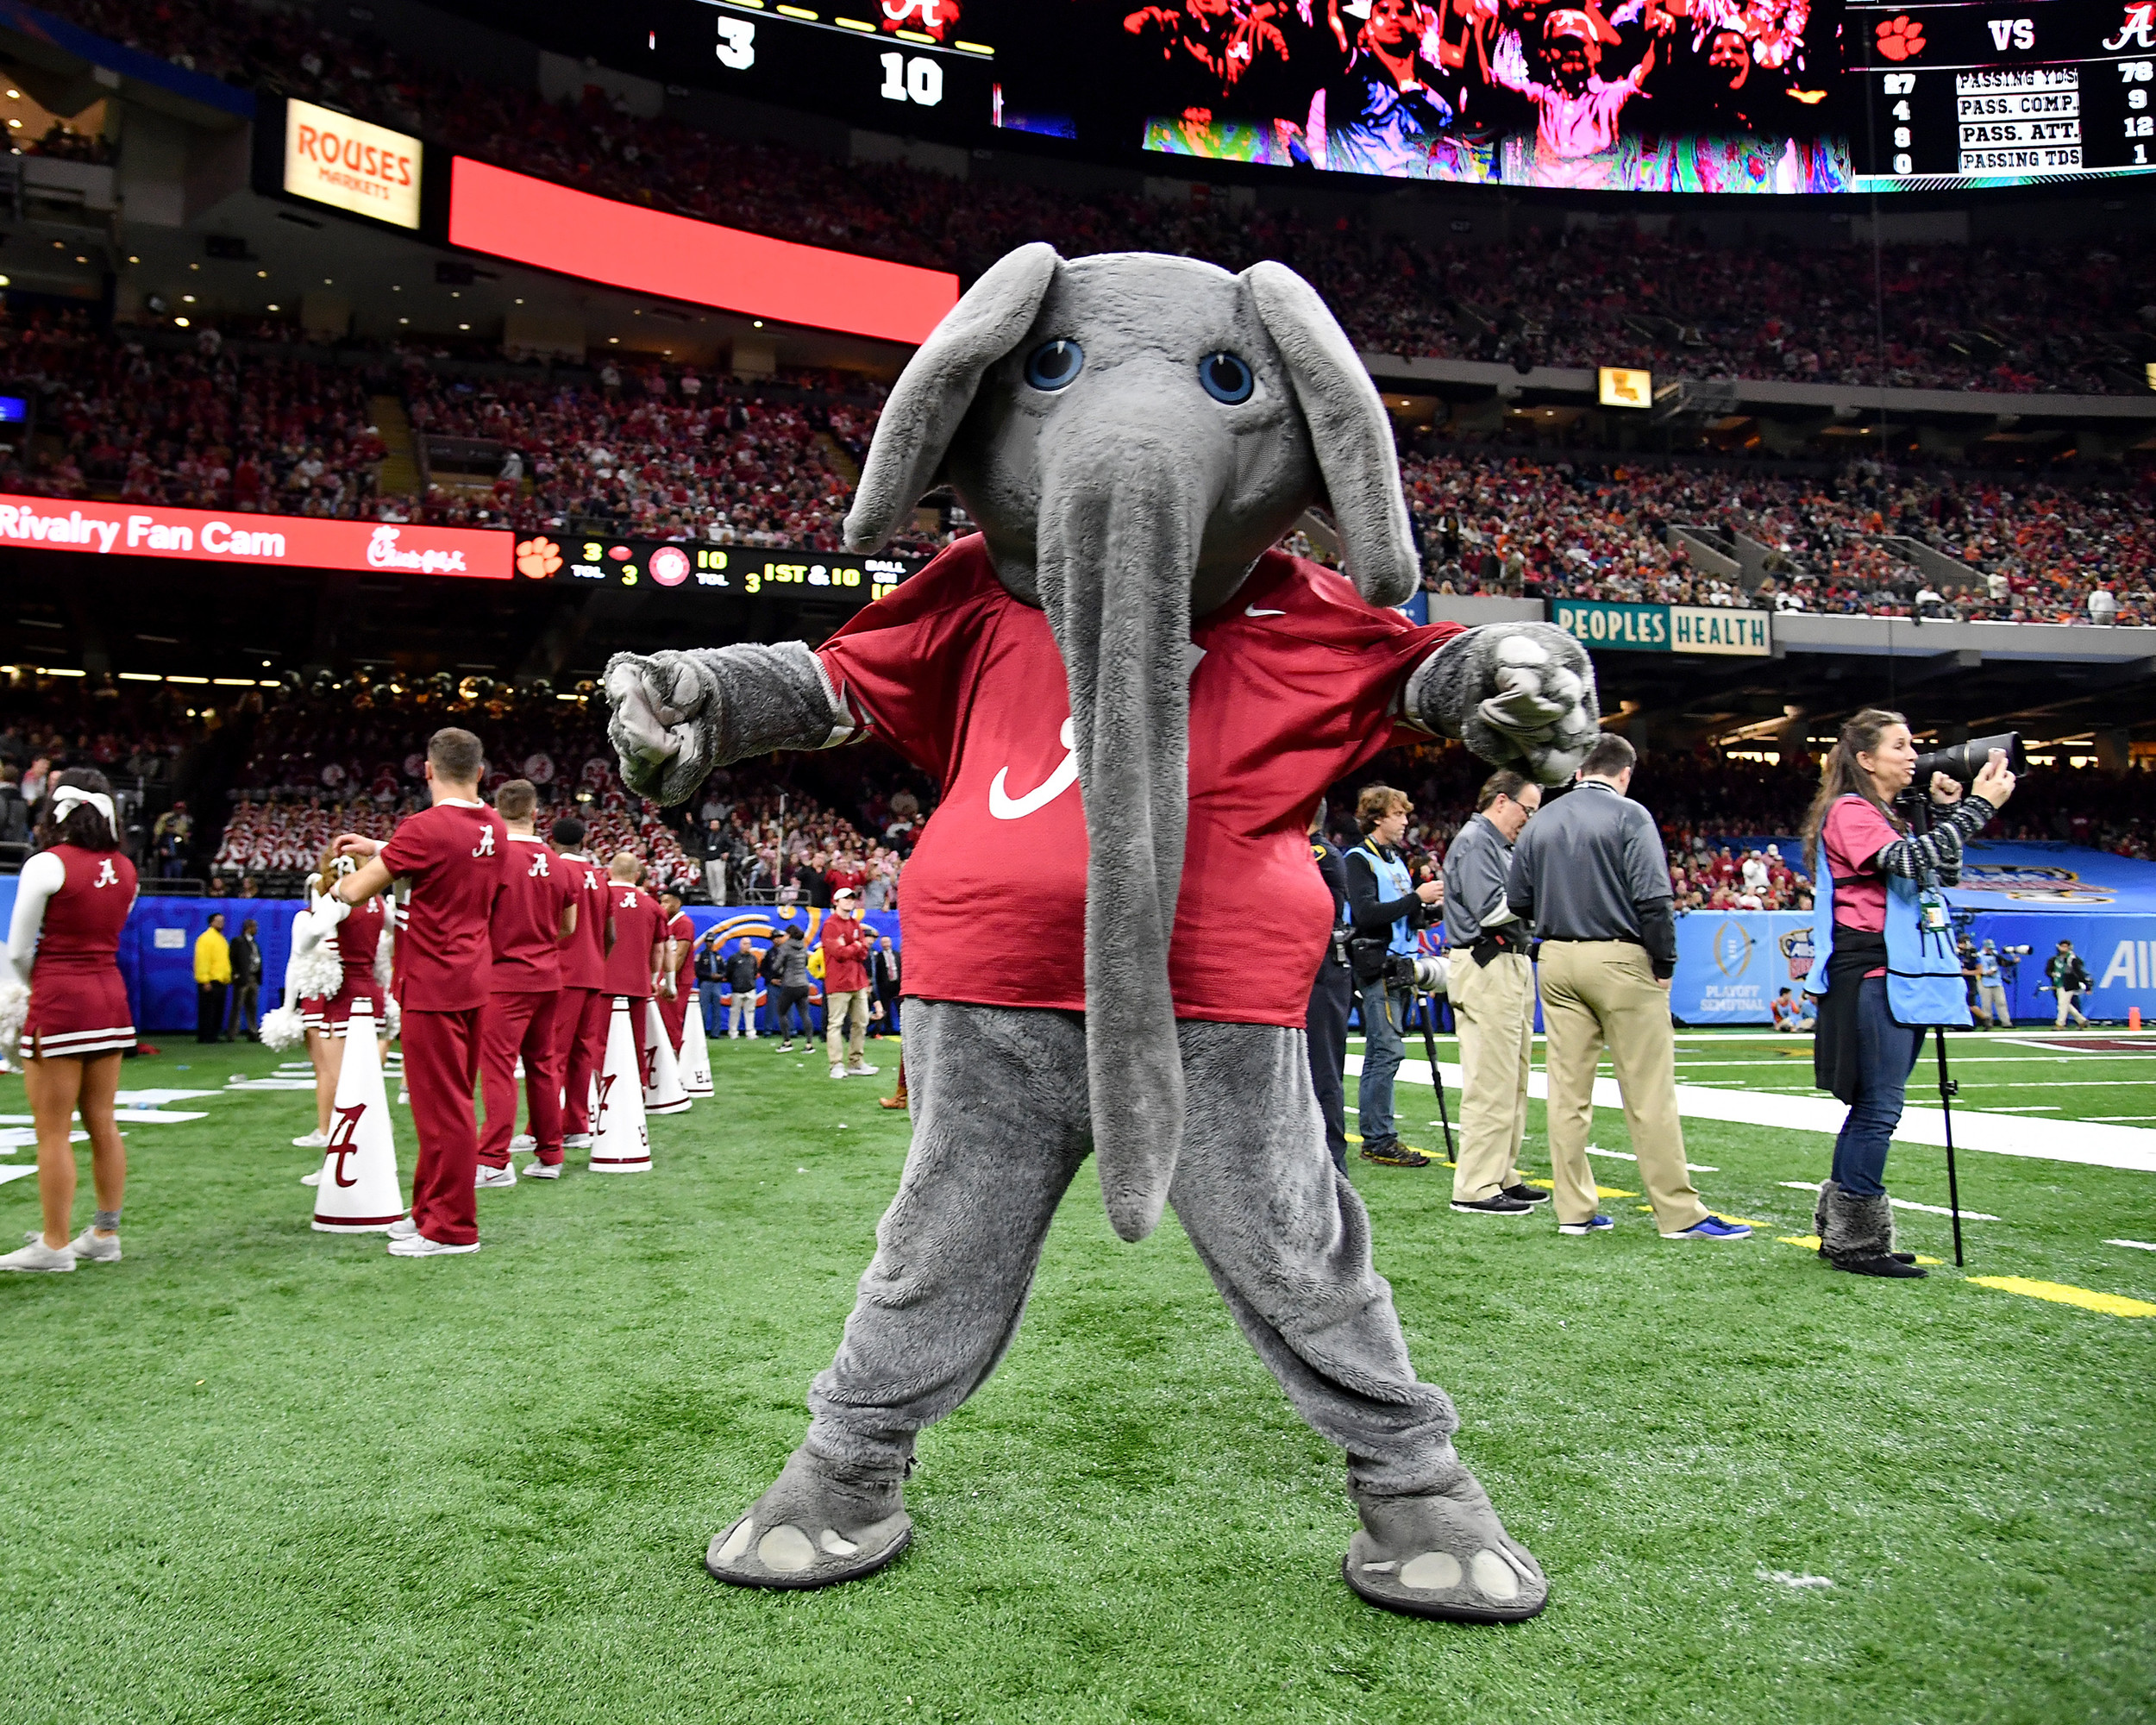 From the first half of the 2018 AllState Sugar Bowl featuring the Clemson Tigers against the Alabama Crimson Tide on Jan. 1, 2018, at the Mercedes-Benz SuperDome in New Orleans, La. Alabama won the game 24-6. (Photo by Lee Walls)